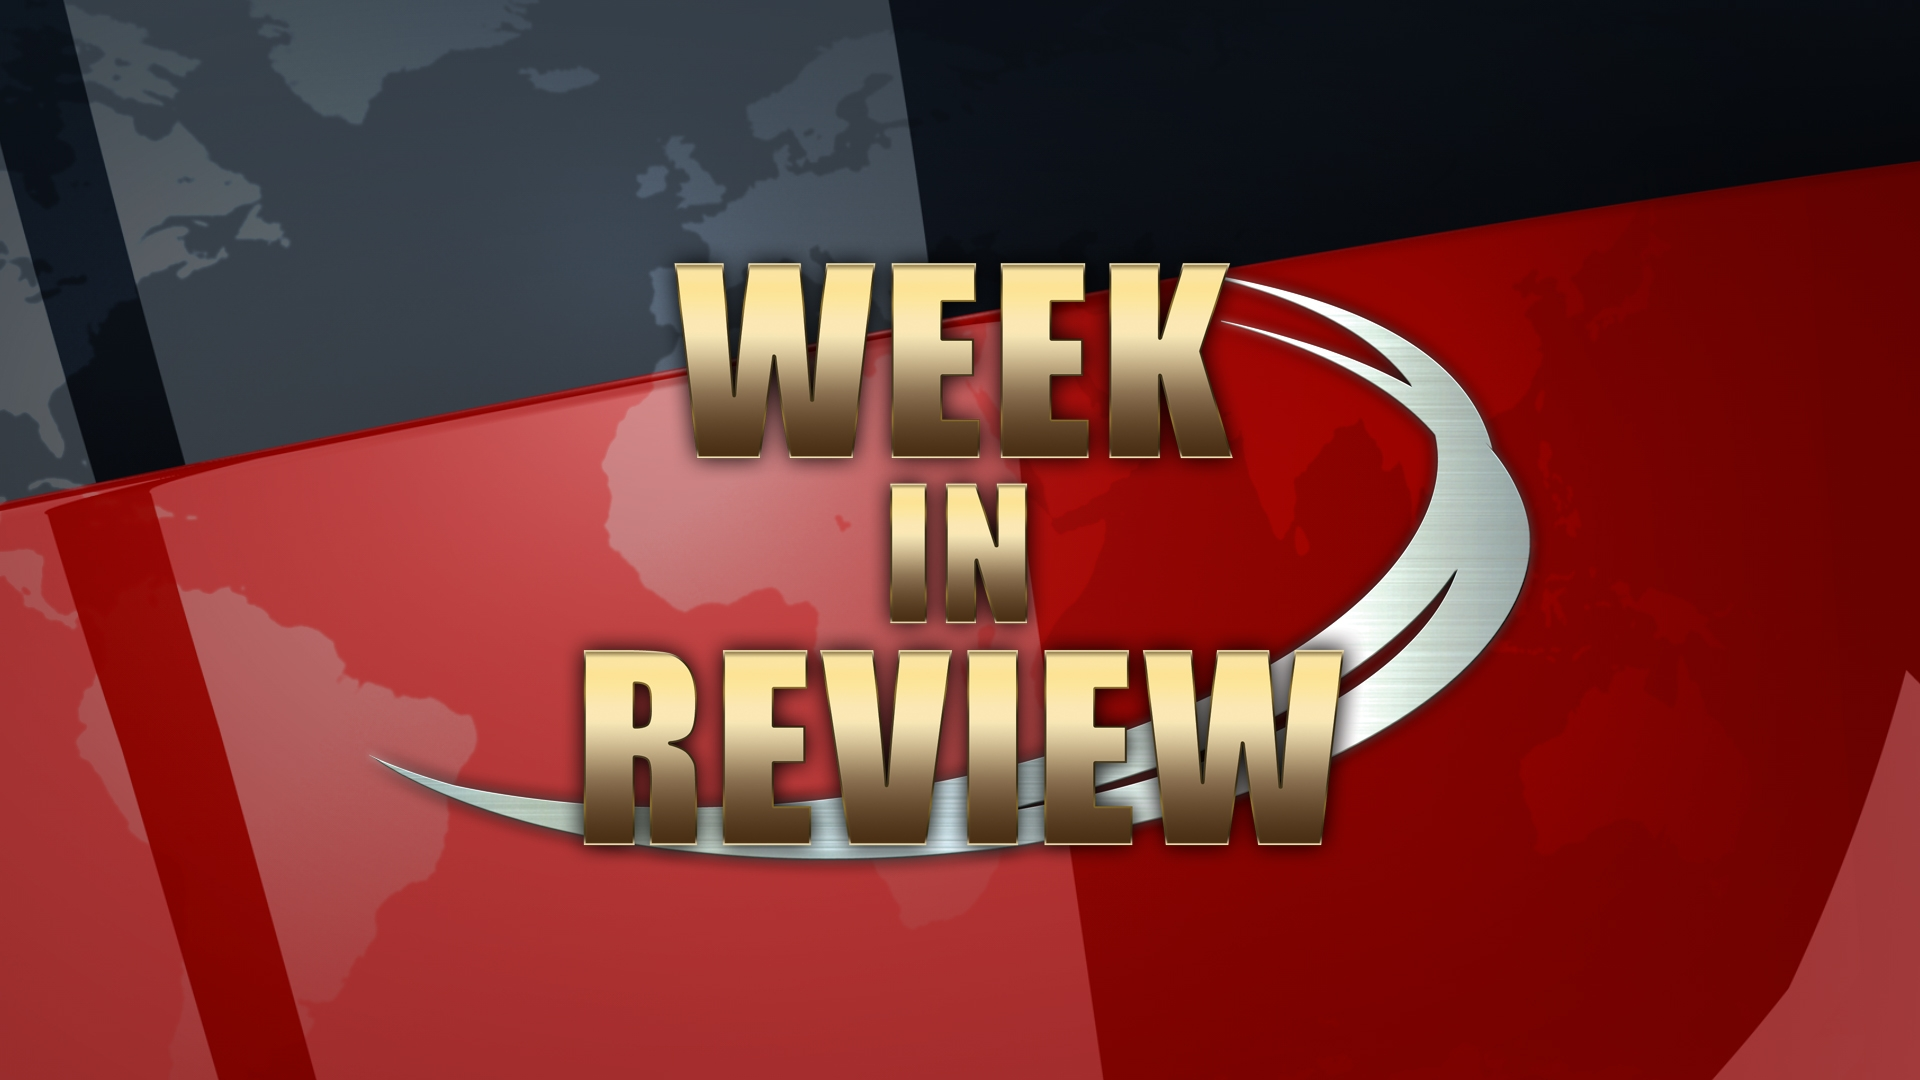 Thunder Bay Week in Review